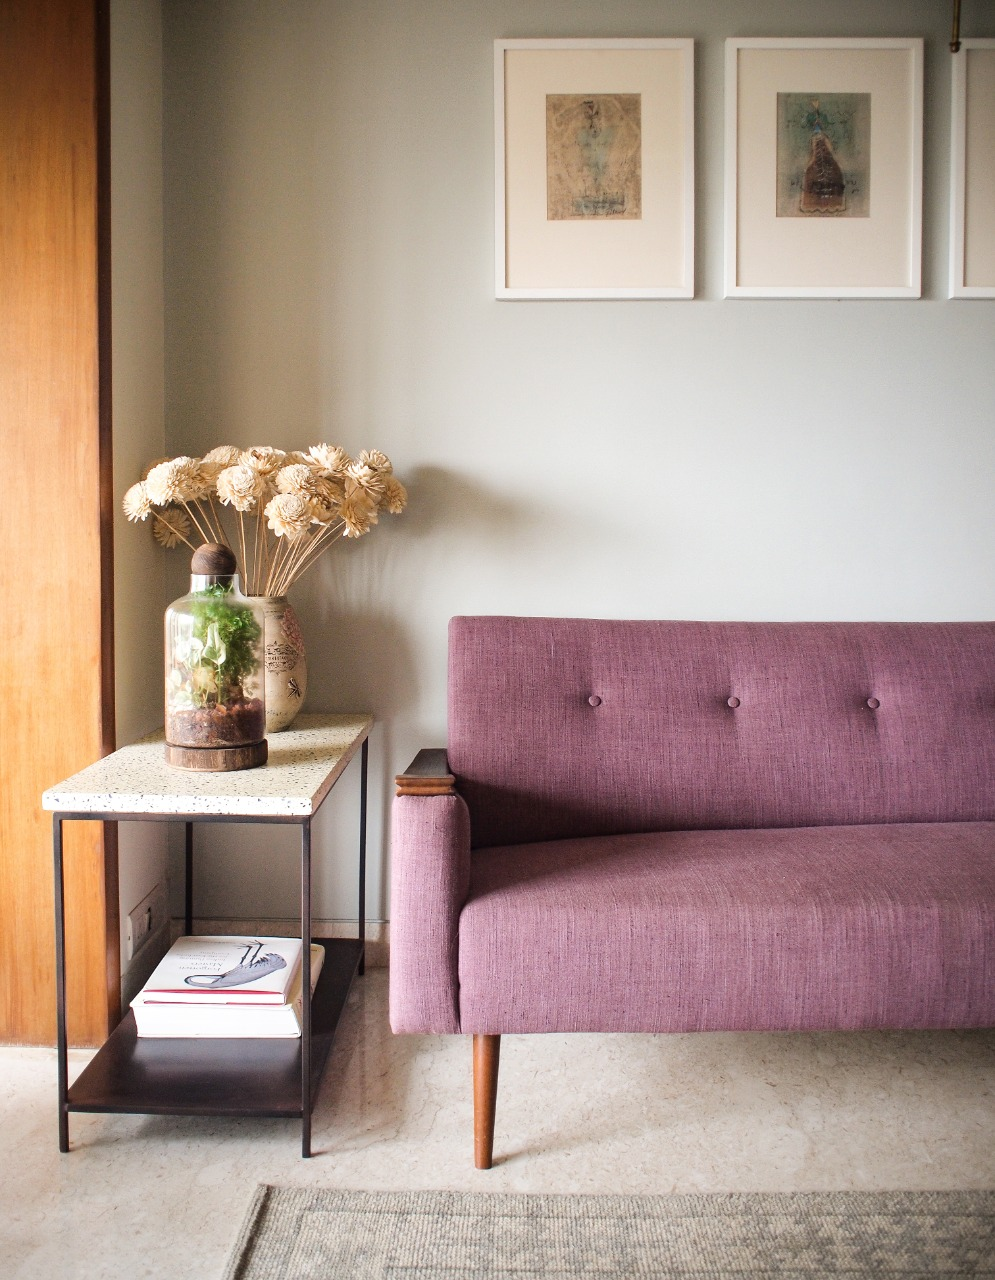 Home Decor Tips: Nature inspired decor for your home